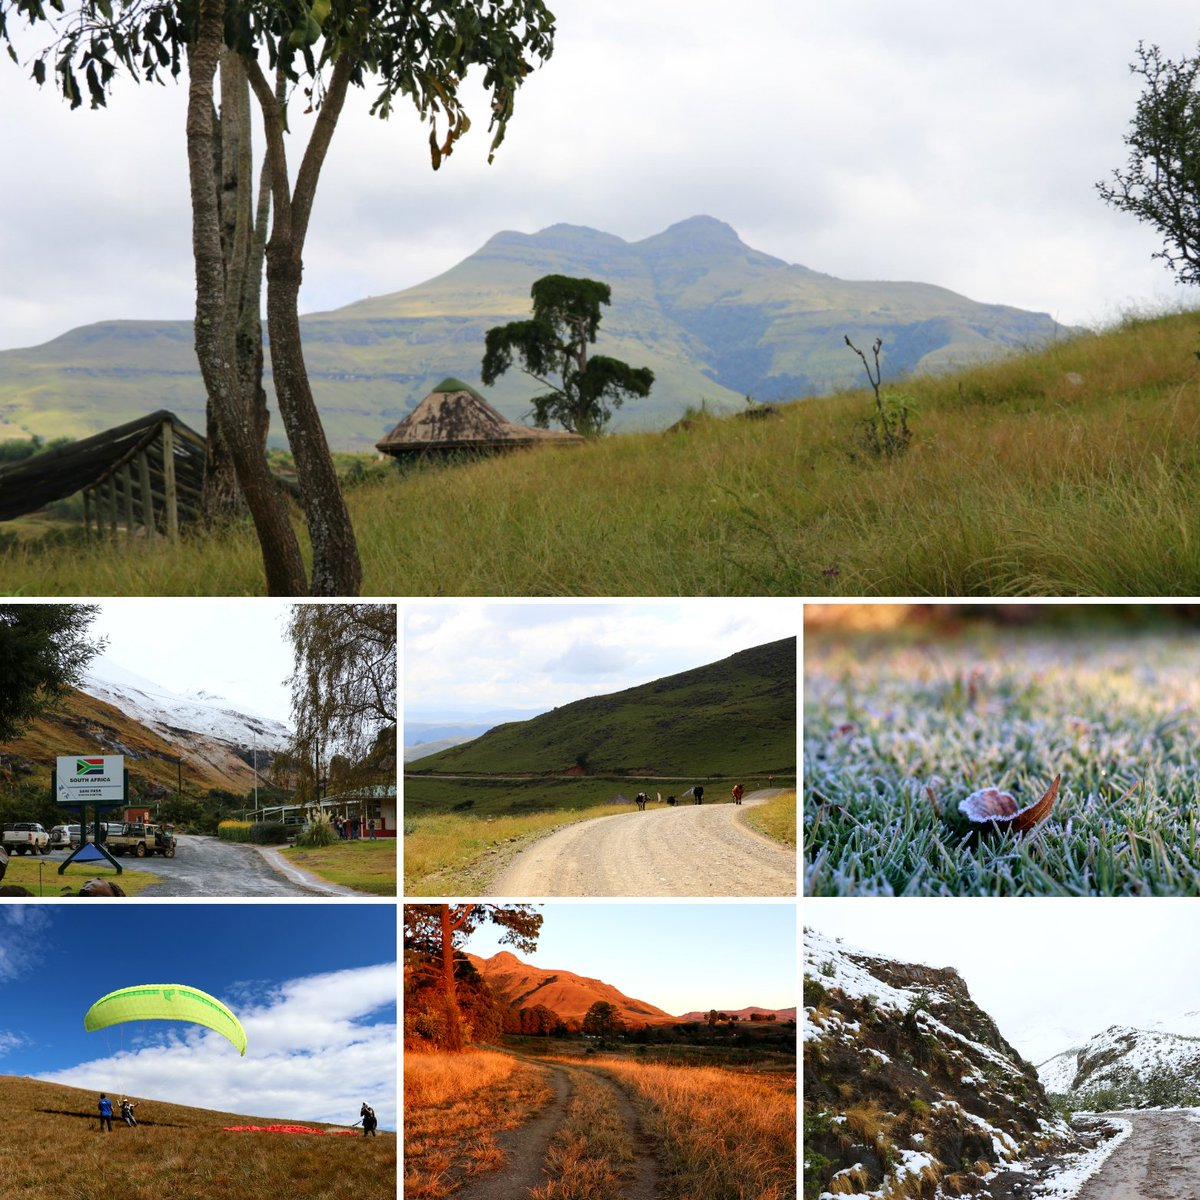 #TravelTuesday #tbt Top Things To Do in Southern Drakensberg    http:// tourismguideafrica.com/1155-2/  &nbsp;   <br>http://pic.twitter.com/HRs7WjbFB4